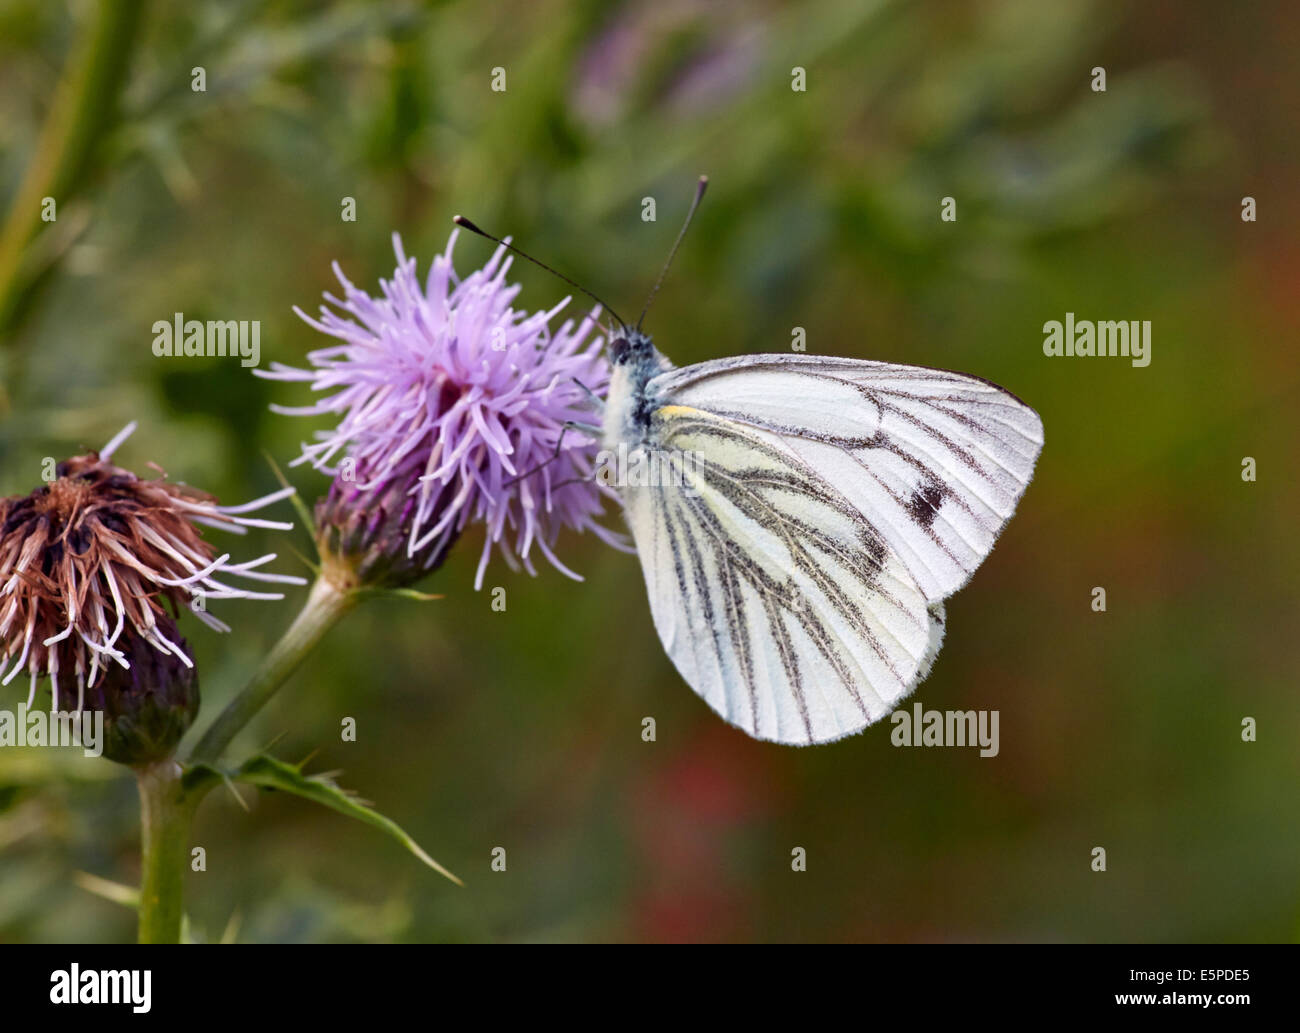 Green-Veined White butterfly on thistle flower. Bookham Common, Surrey, England. - Stock Image